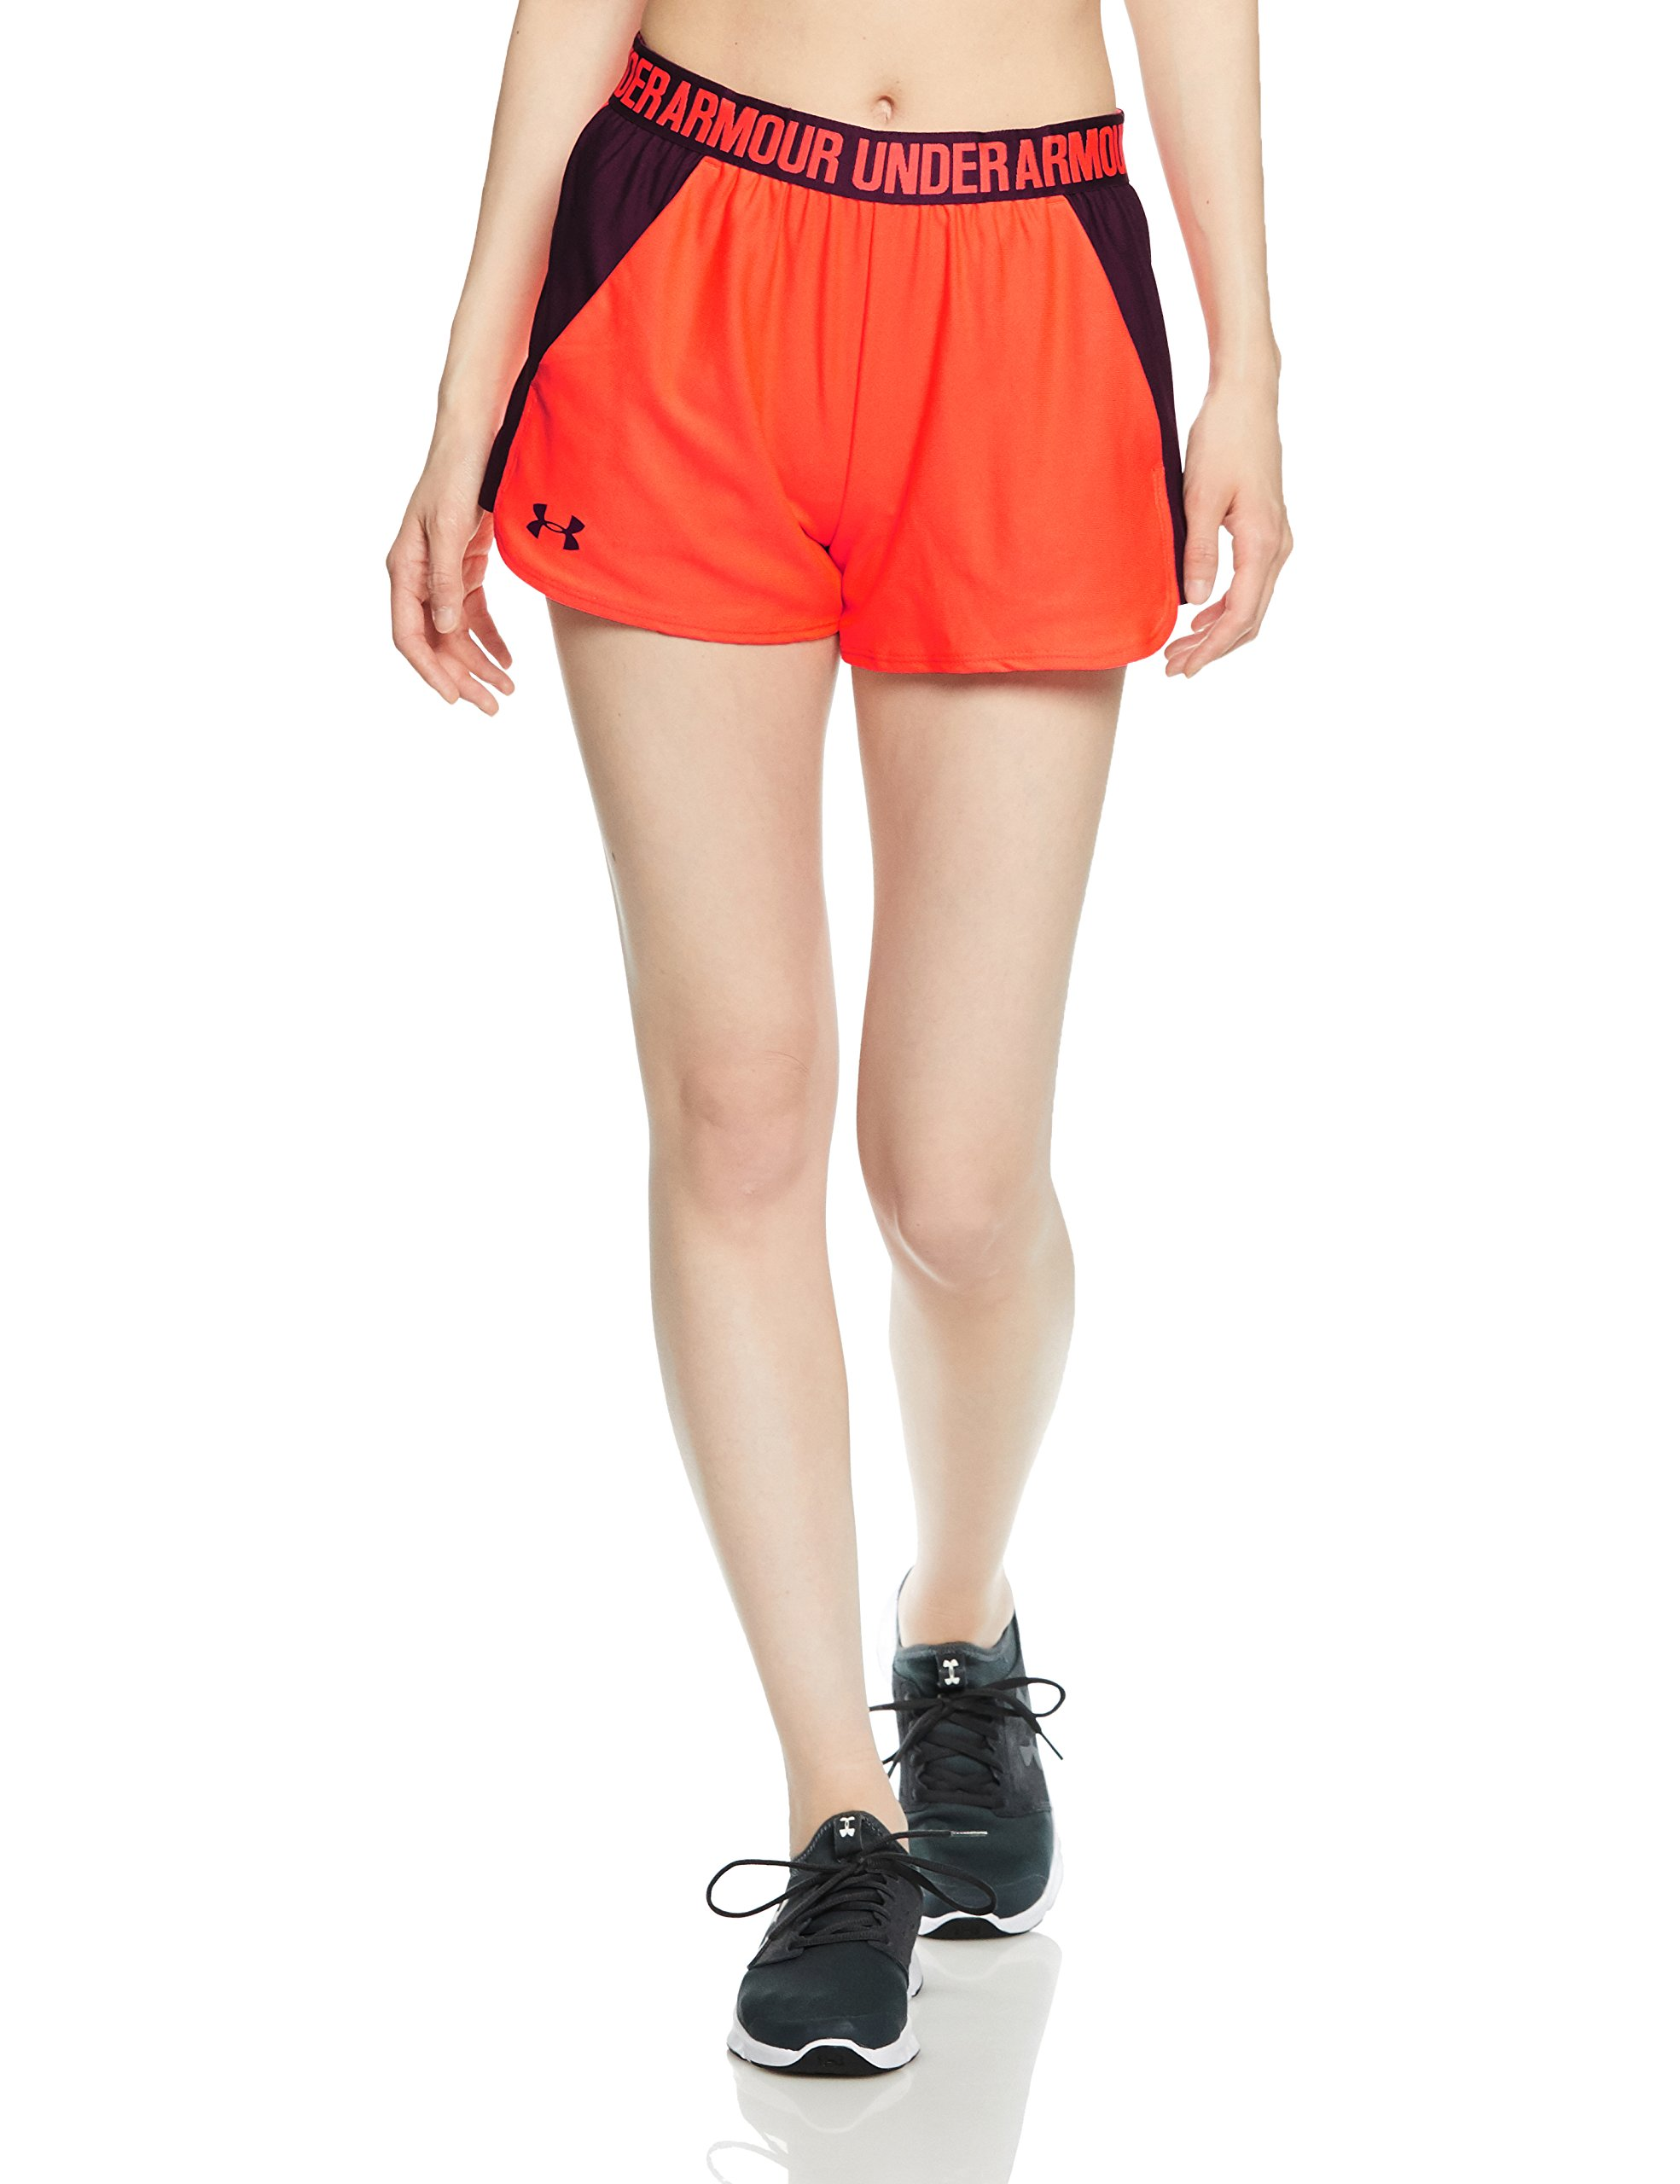 Under Armour Women's Play Up Shorts 2.0, Neon Coral (985)/Merlot, X-Small